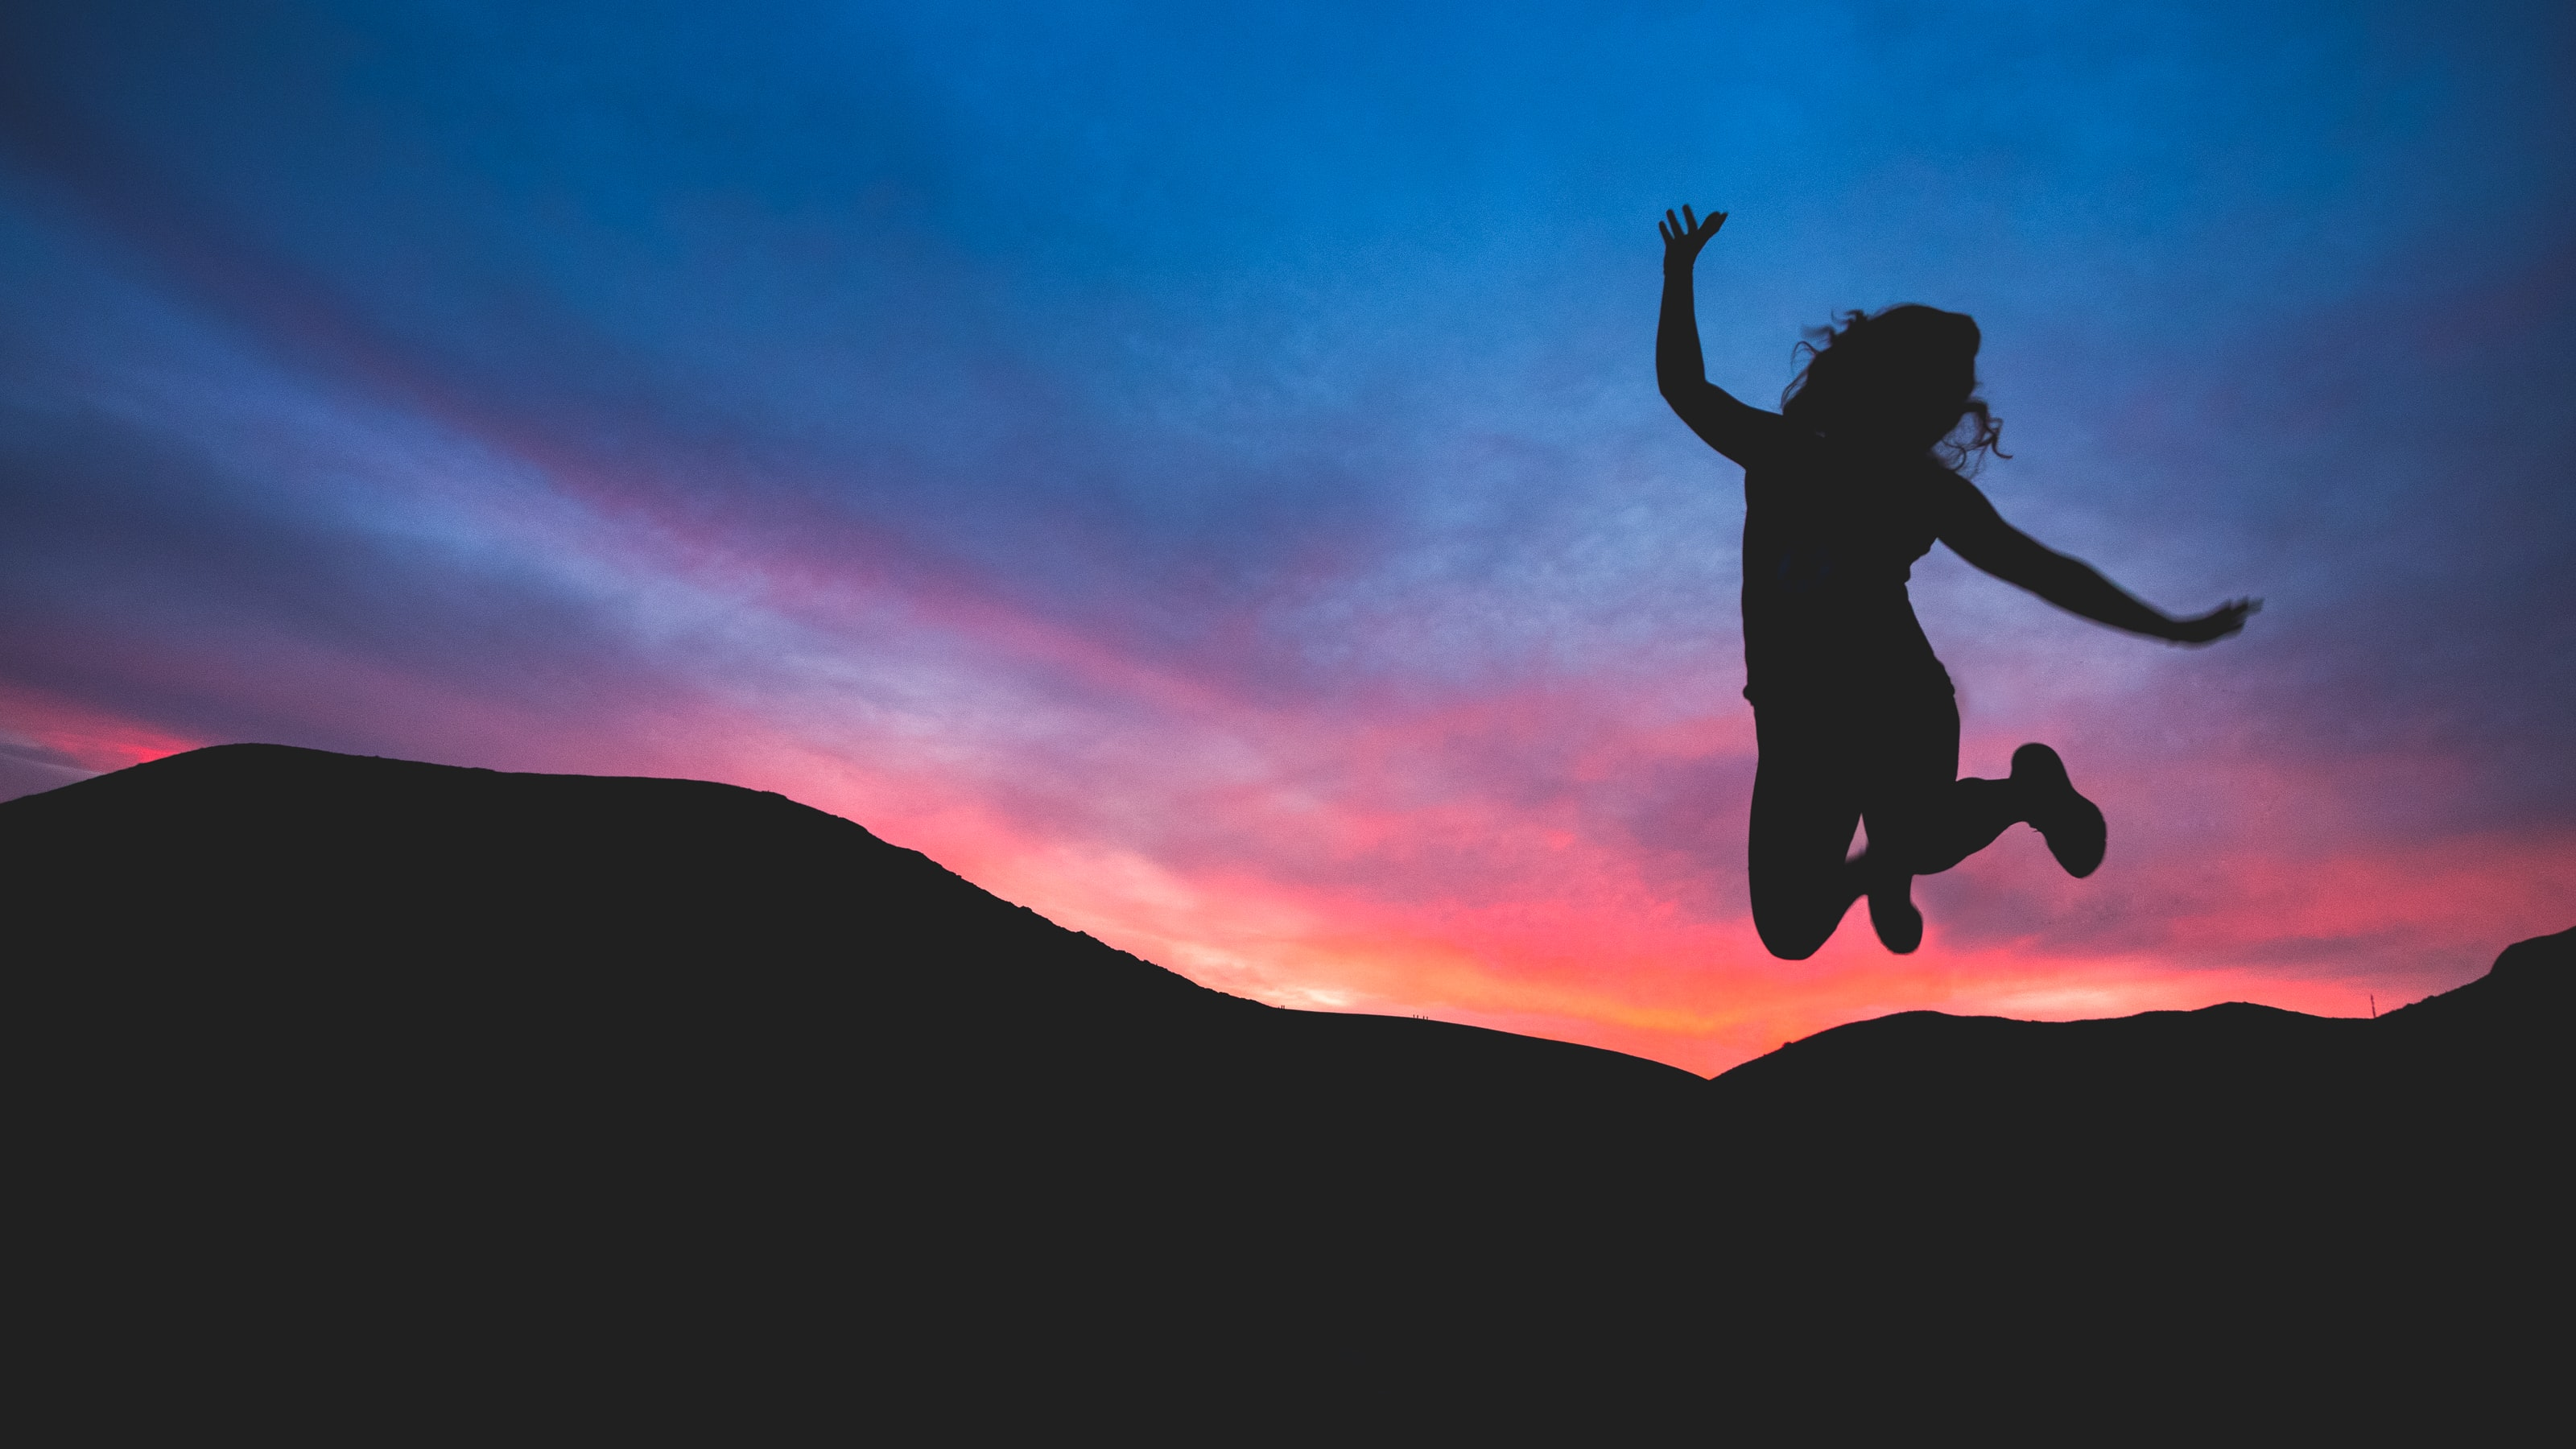 A woman in silhouette jumps for joy against dark mountains and a pink and purple sunset.